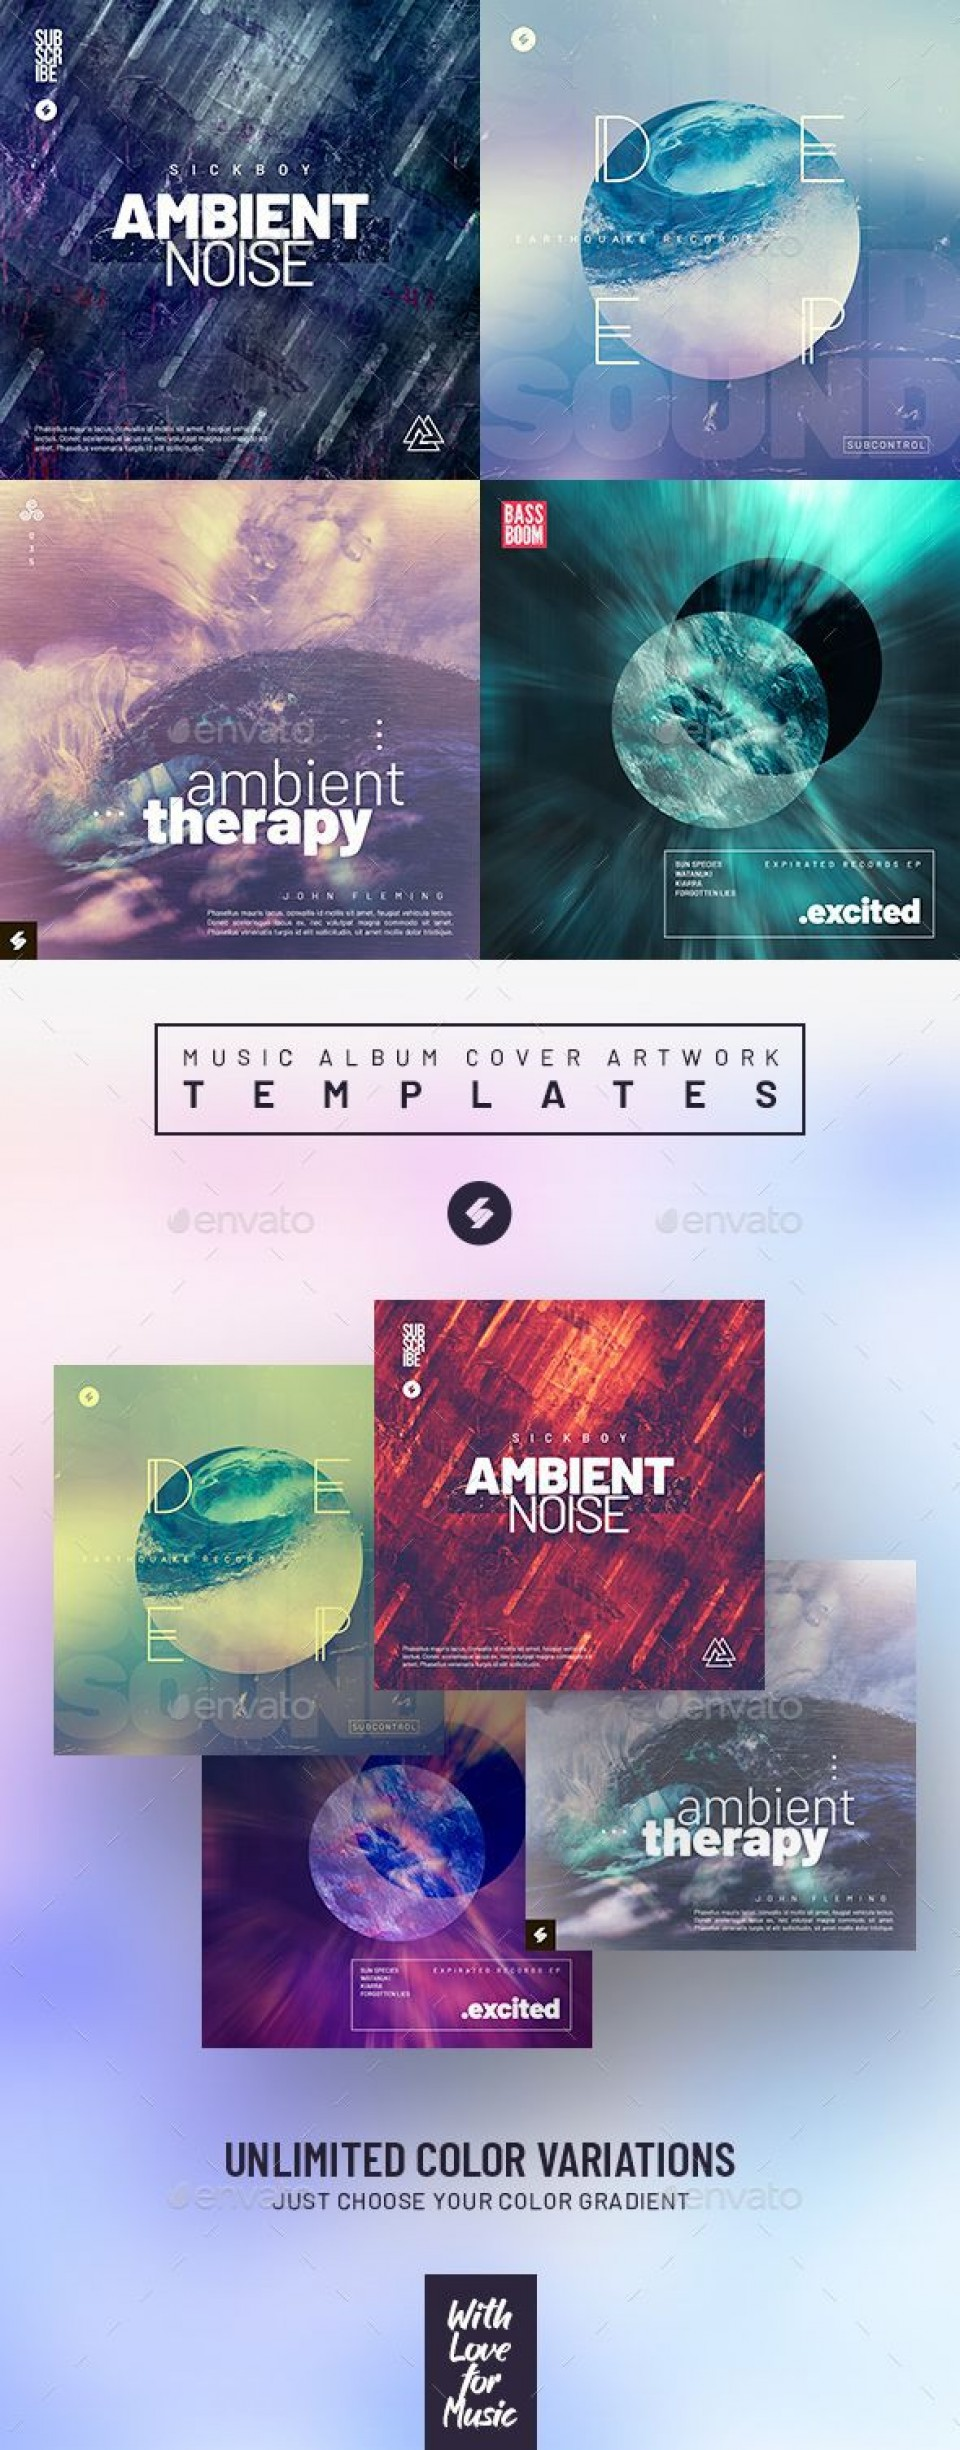 000 Astounding Music Cd Cover Design Template Free Download Photo 960